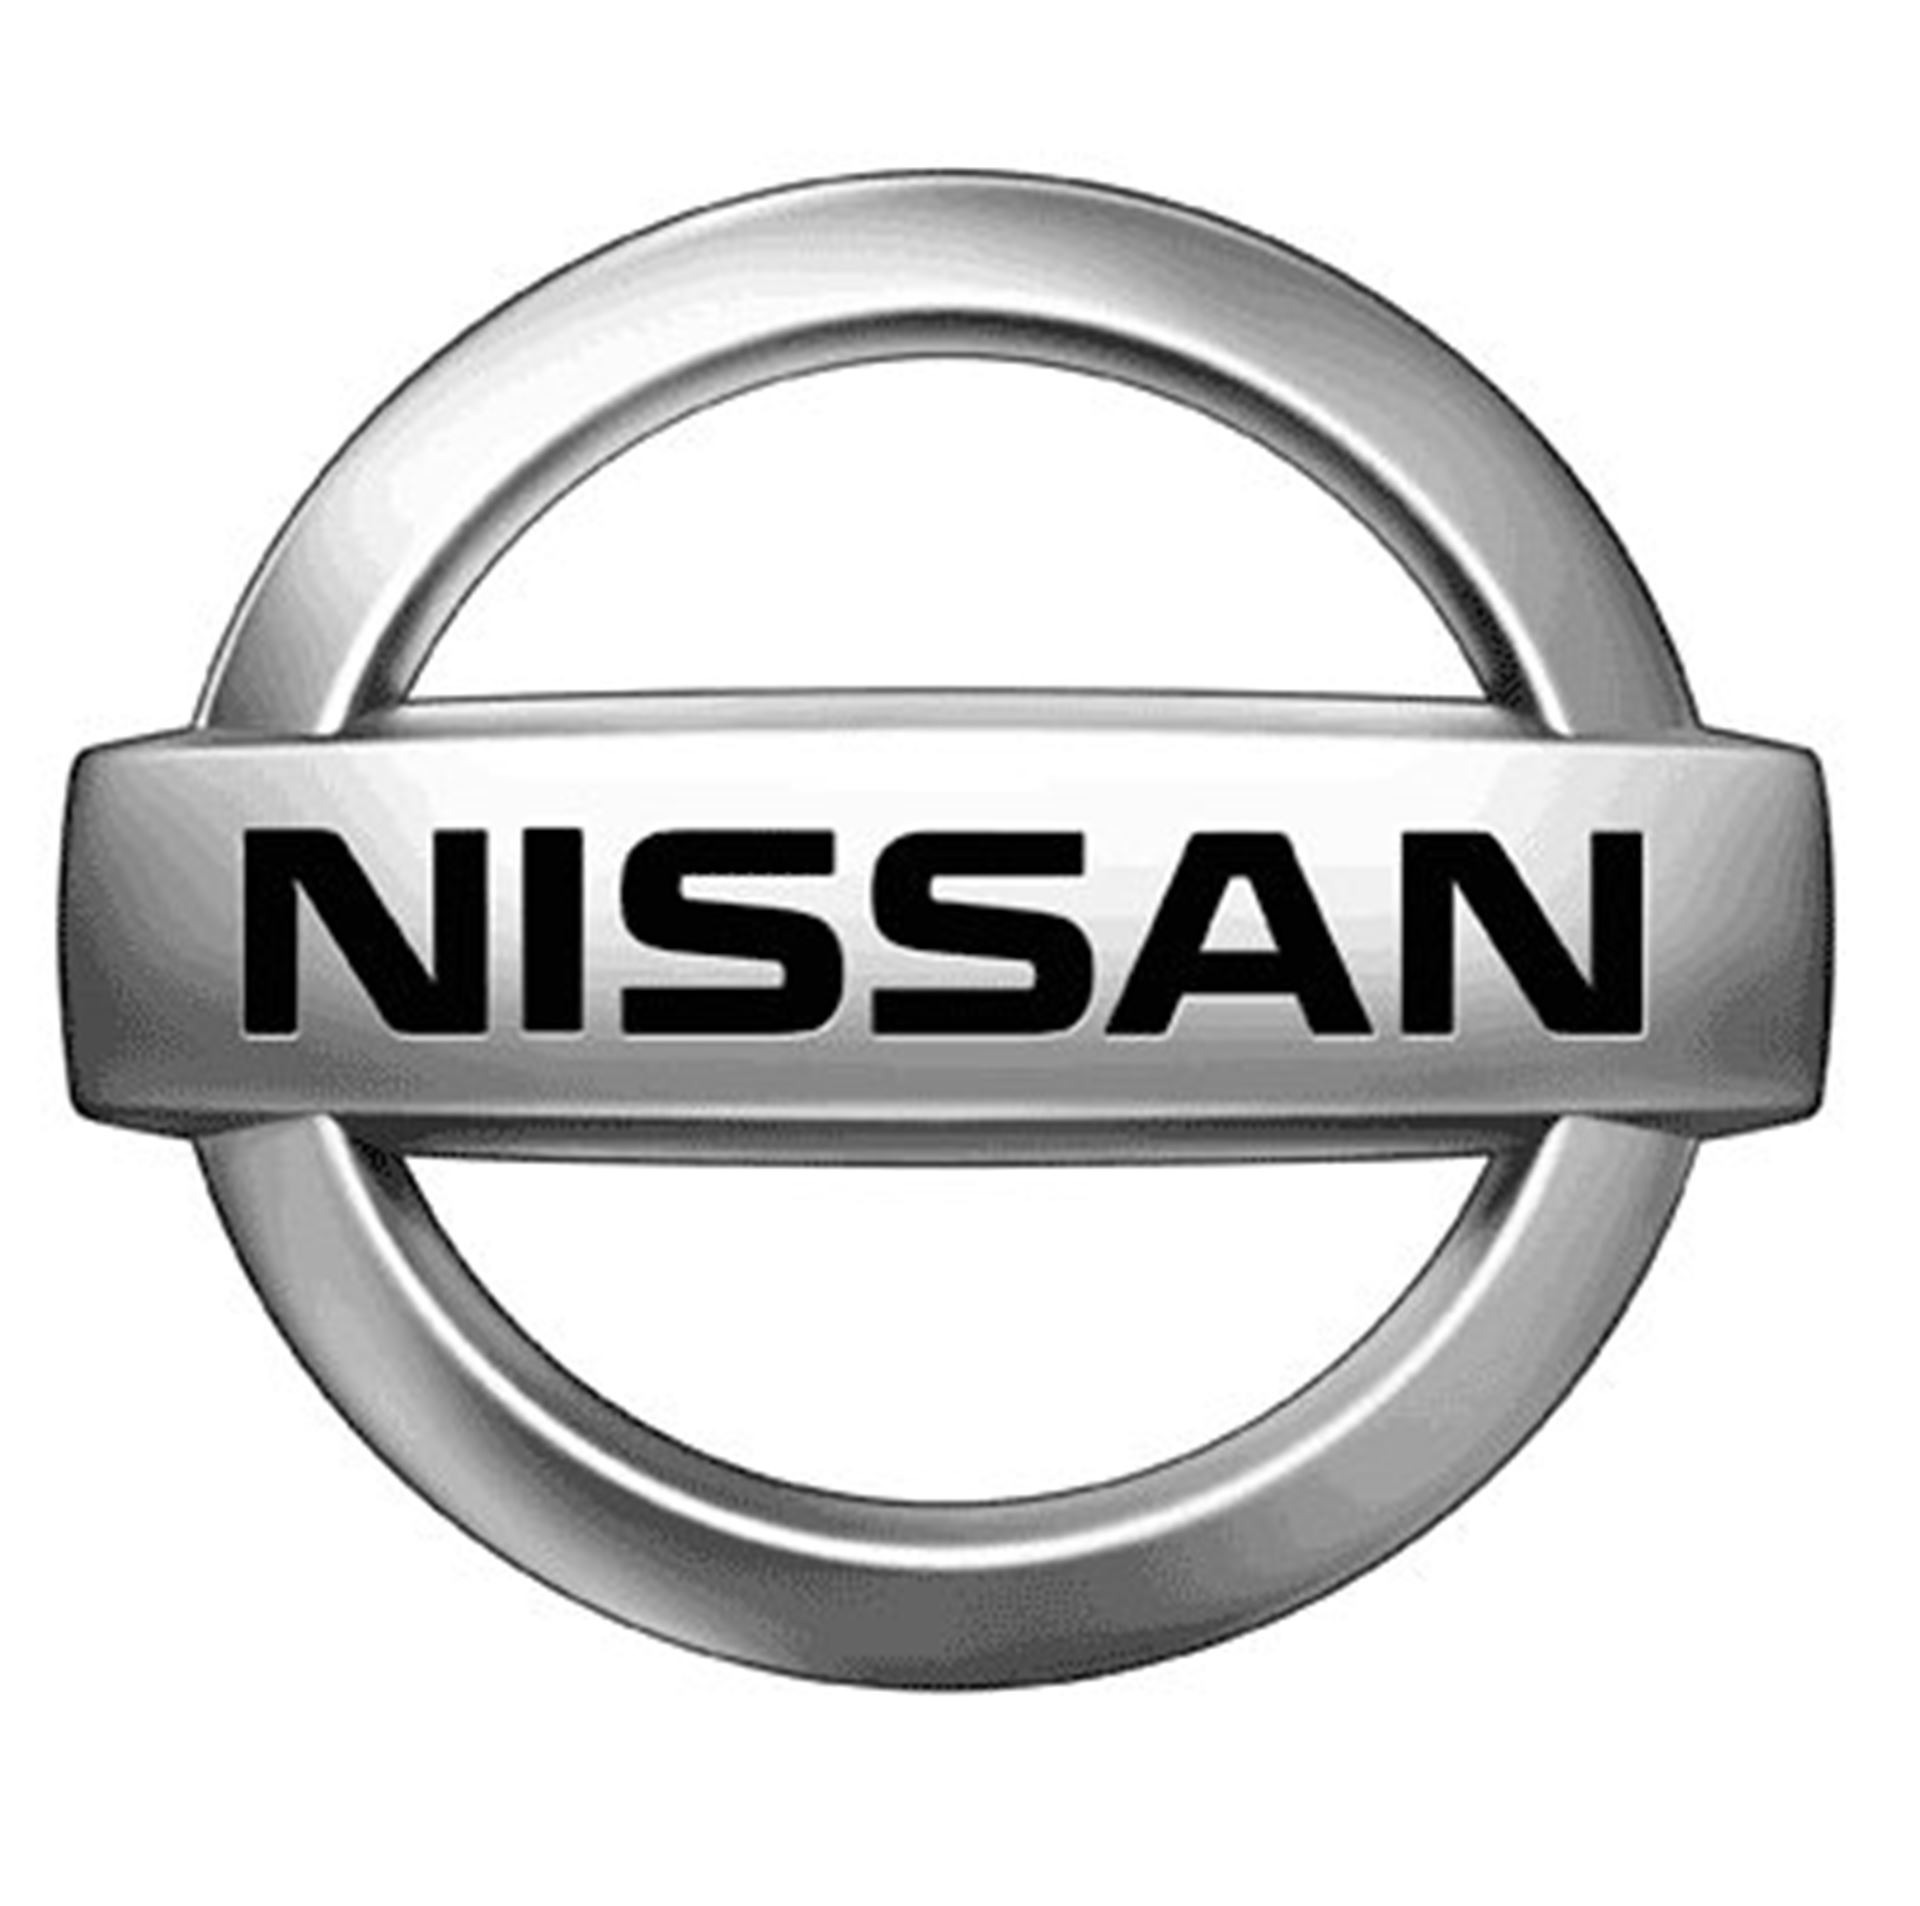 Nissan Corporate Responsibility